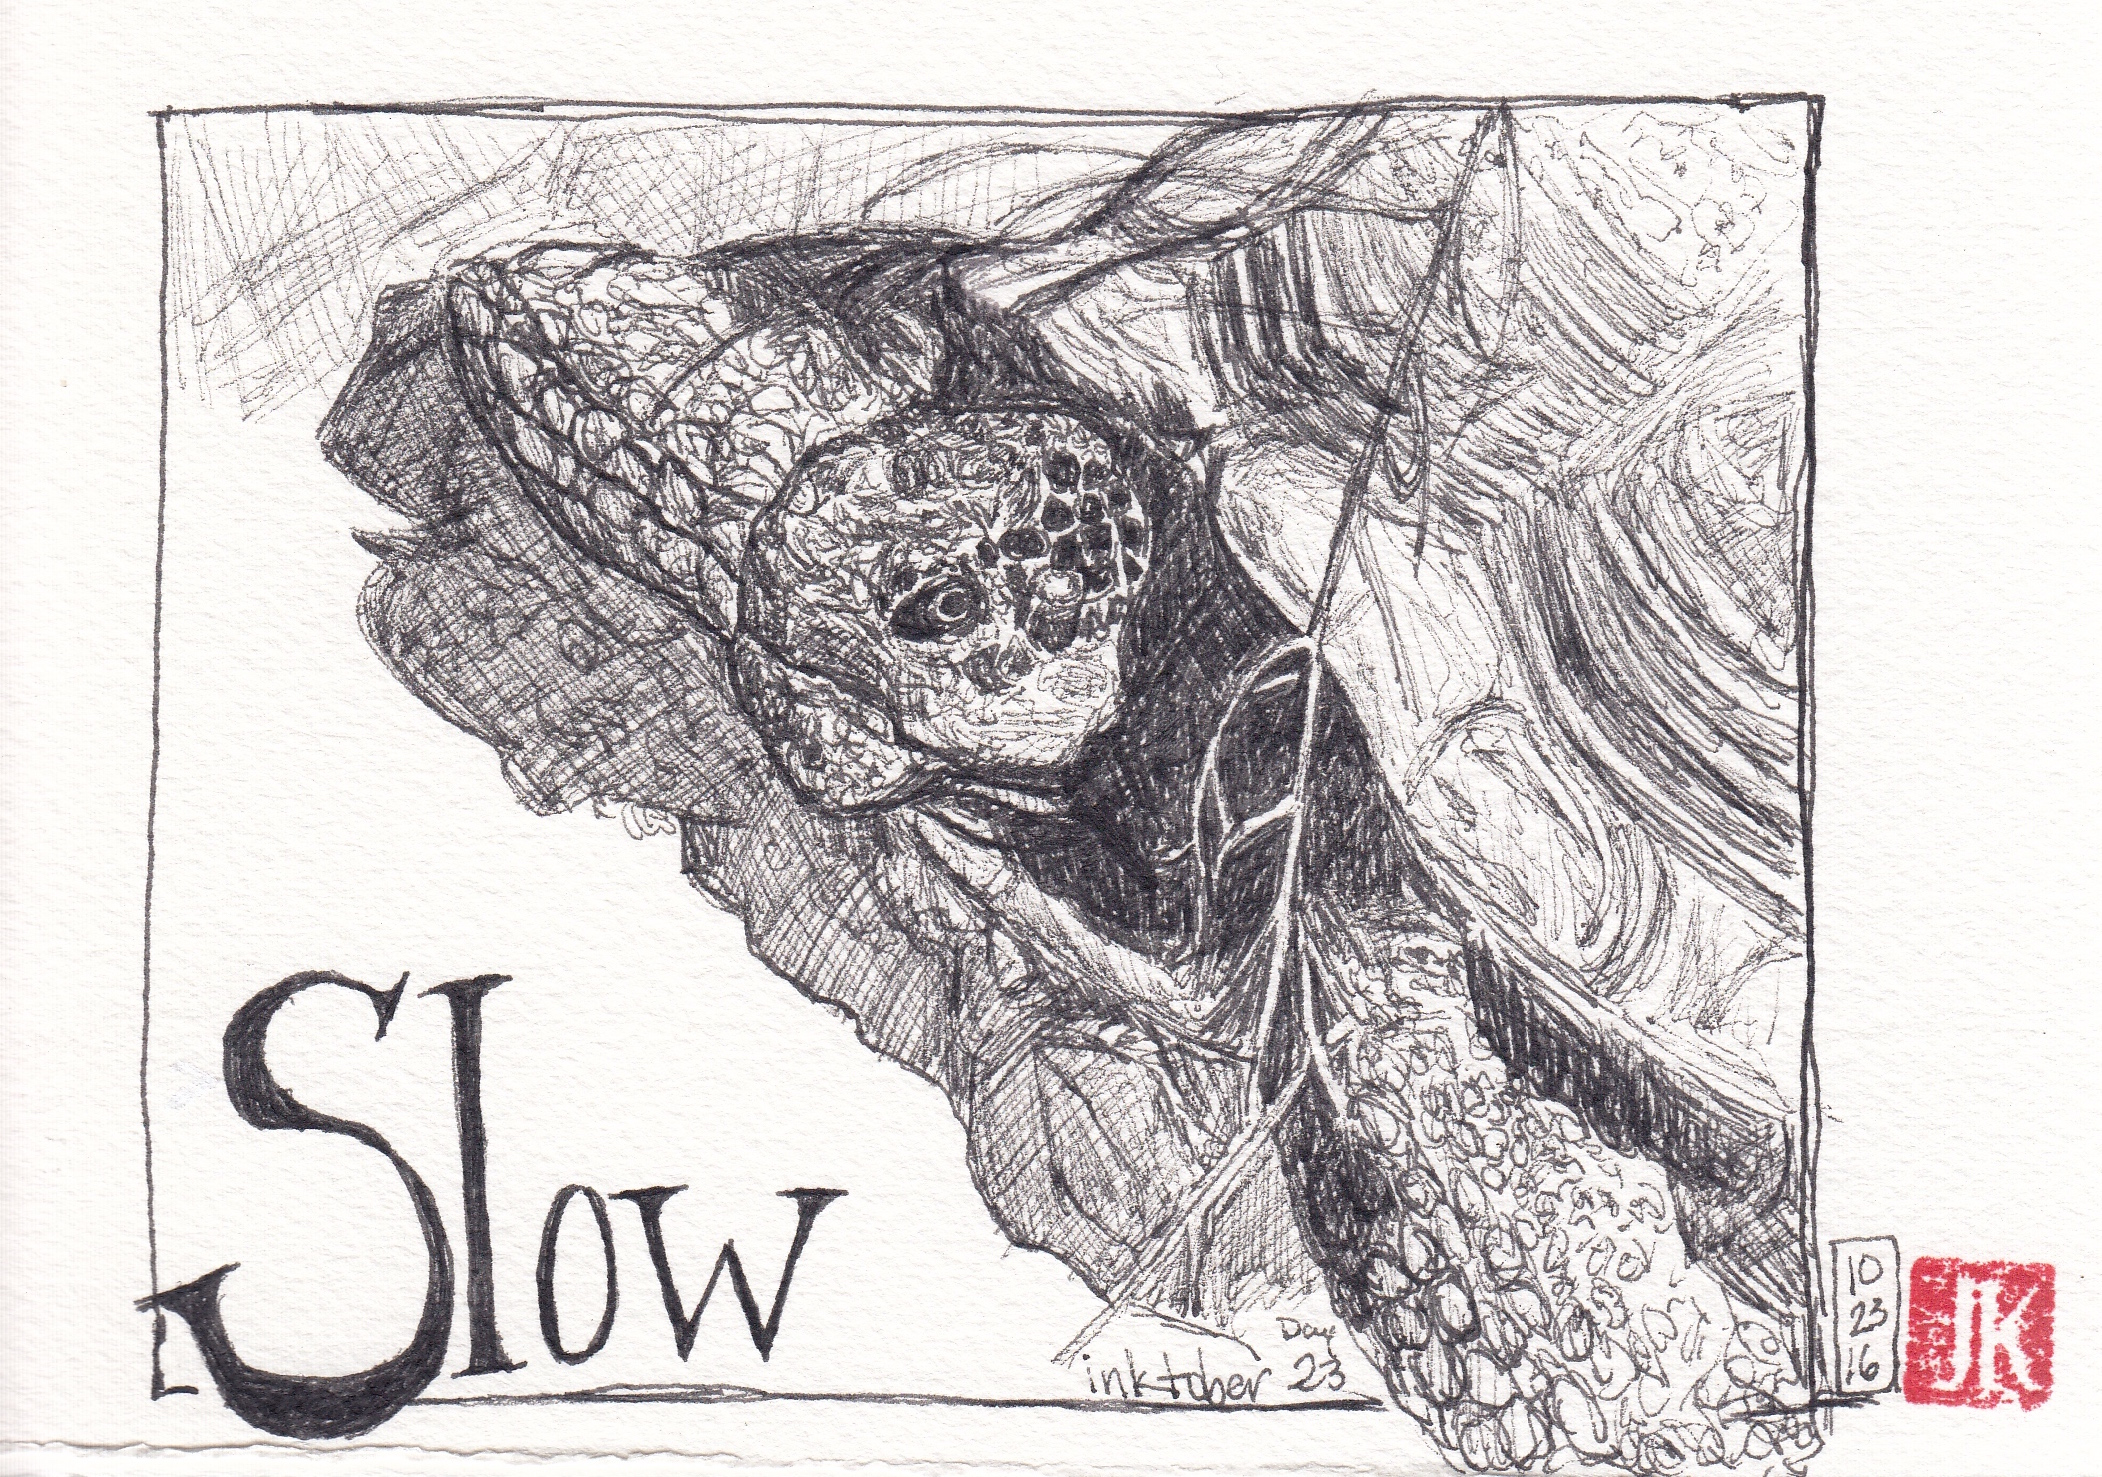 Day 23 - Slow